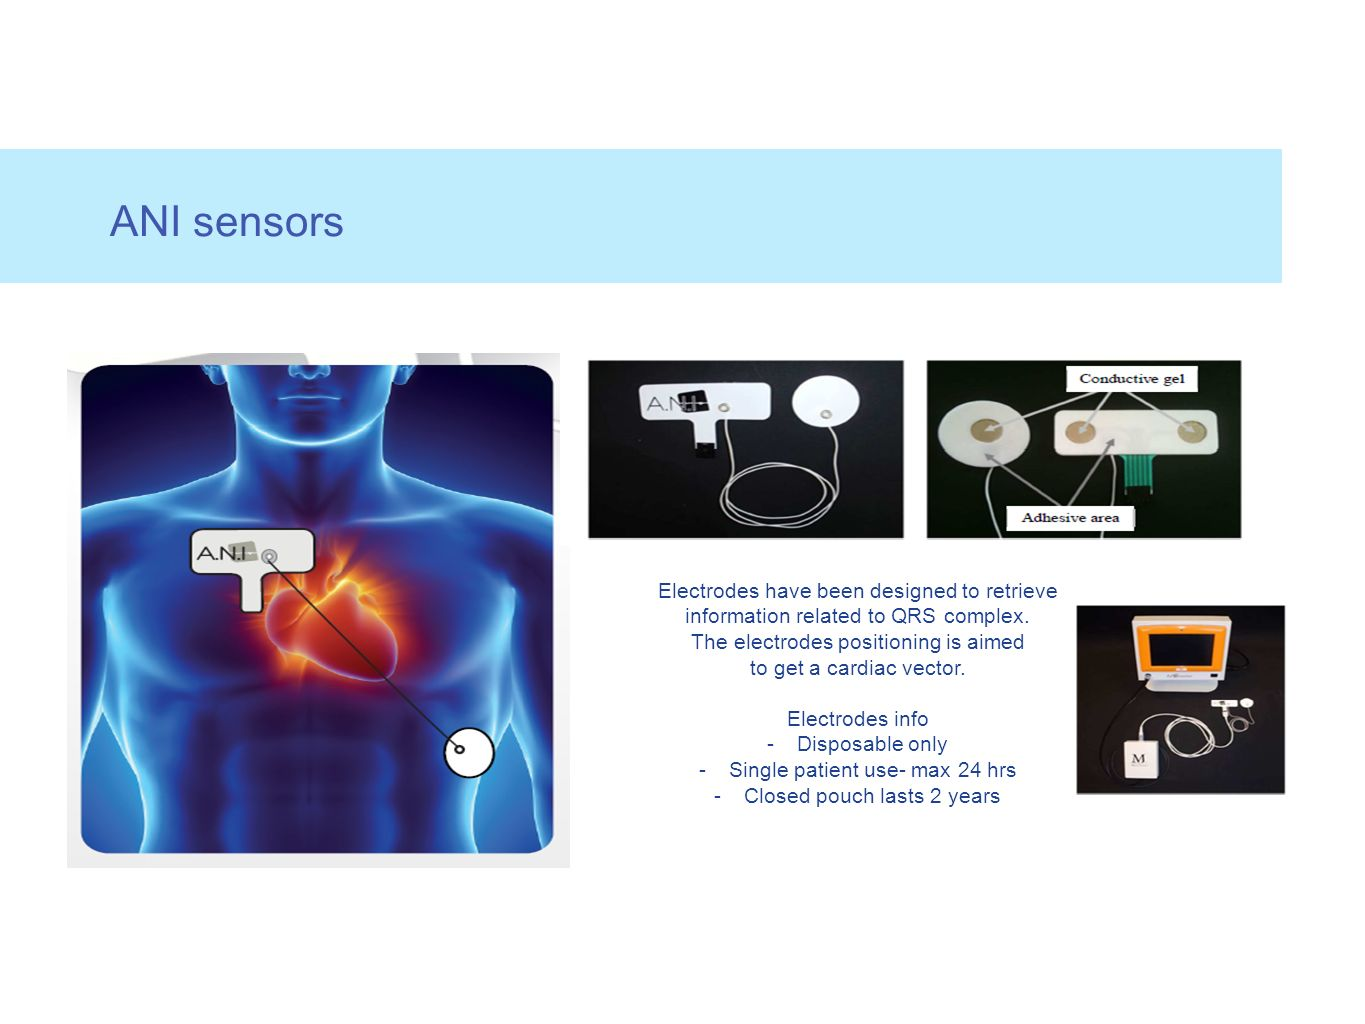 ANI sensors Electrodes have been designed to retrieve information related to QRS complex. The electrodes positioning is aimed.